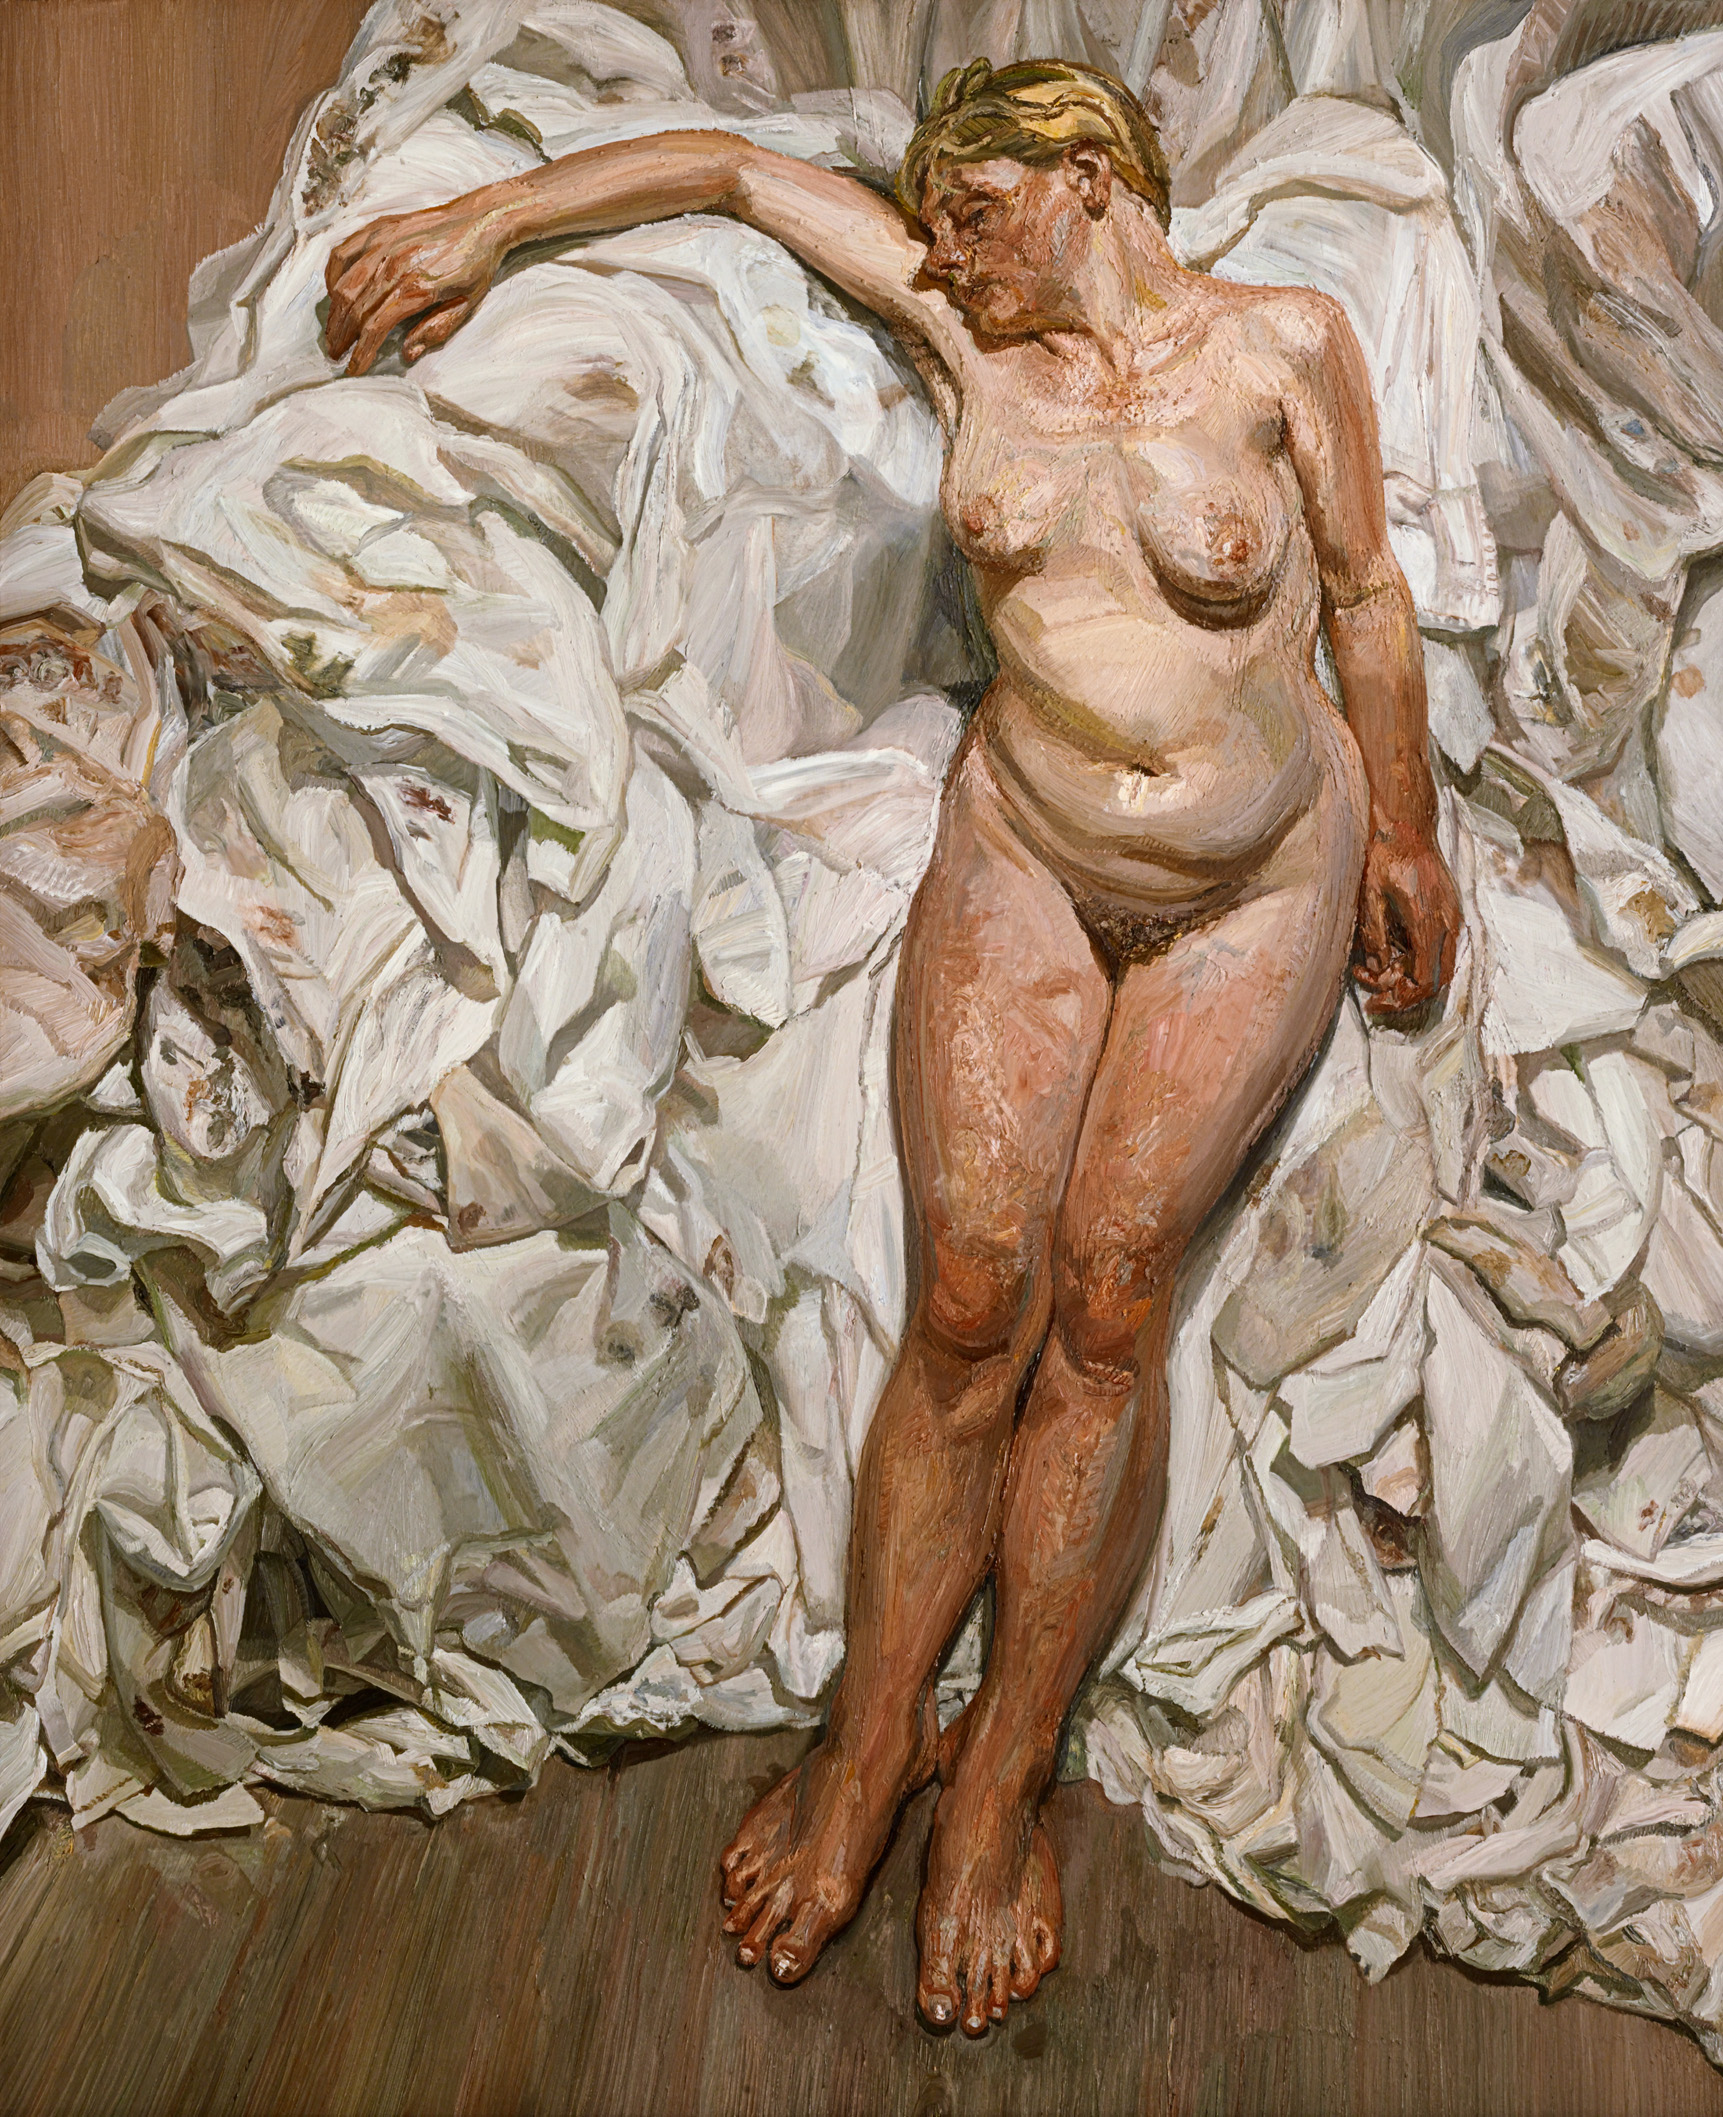 10 Lucian Freud Paintings That Will Make You Fear Flesh NSFW  HuffPost